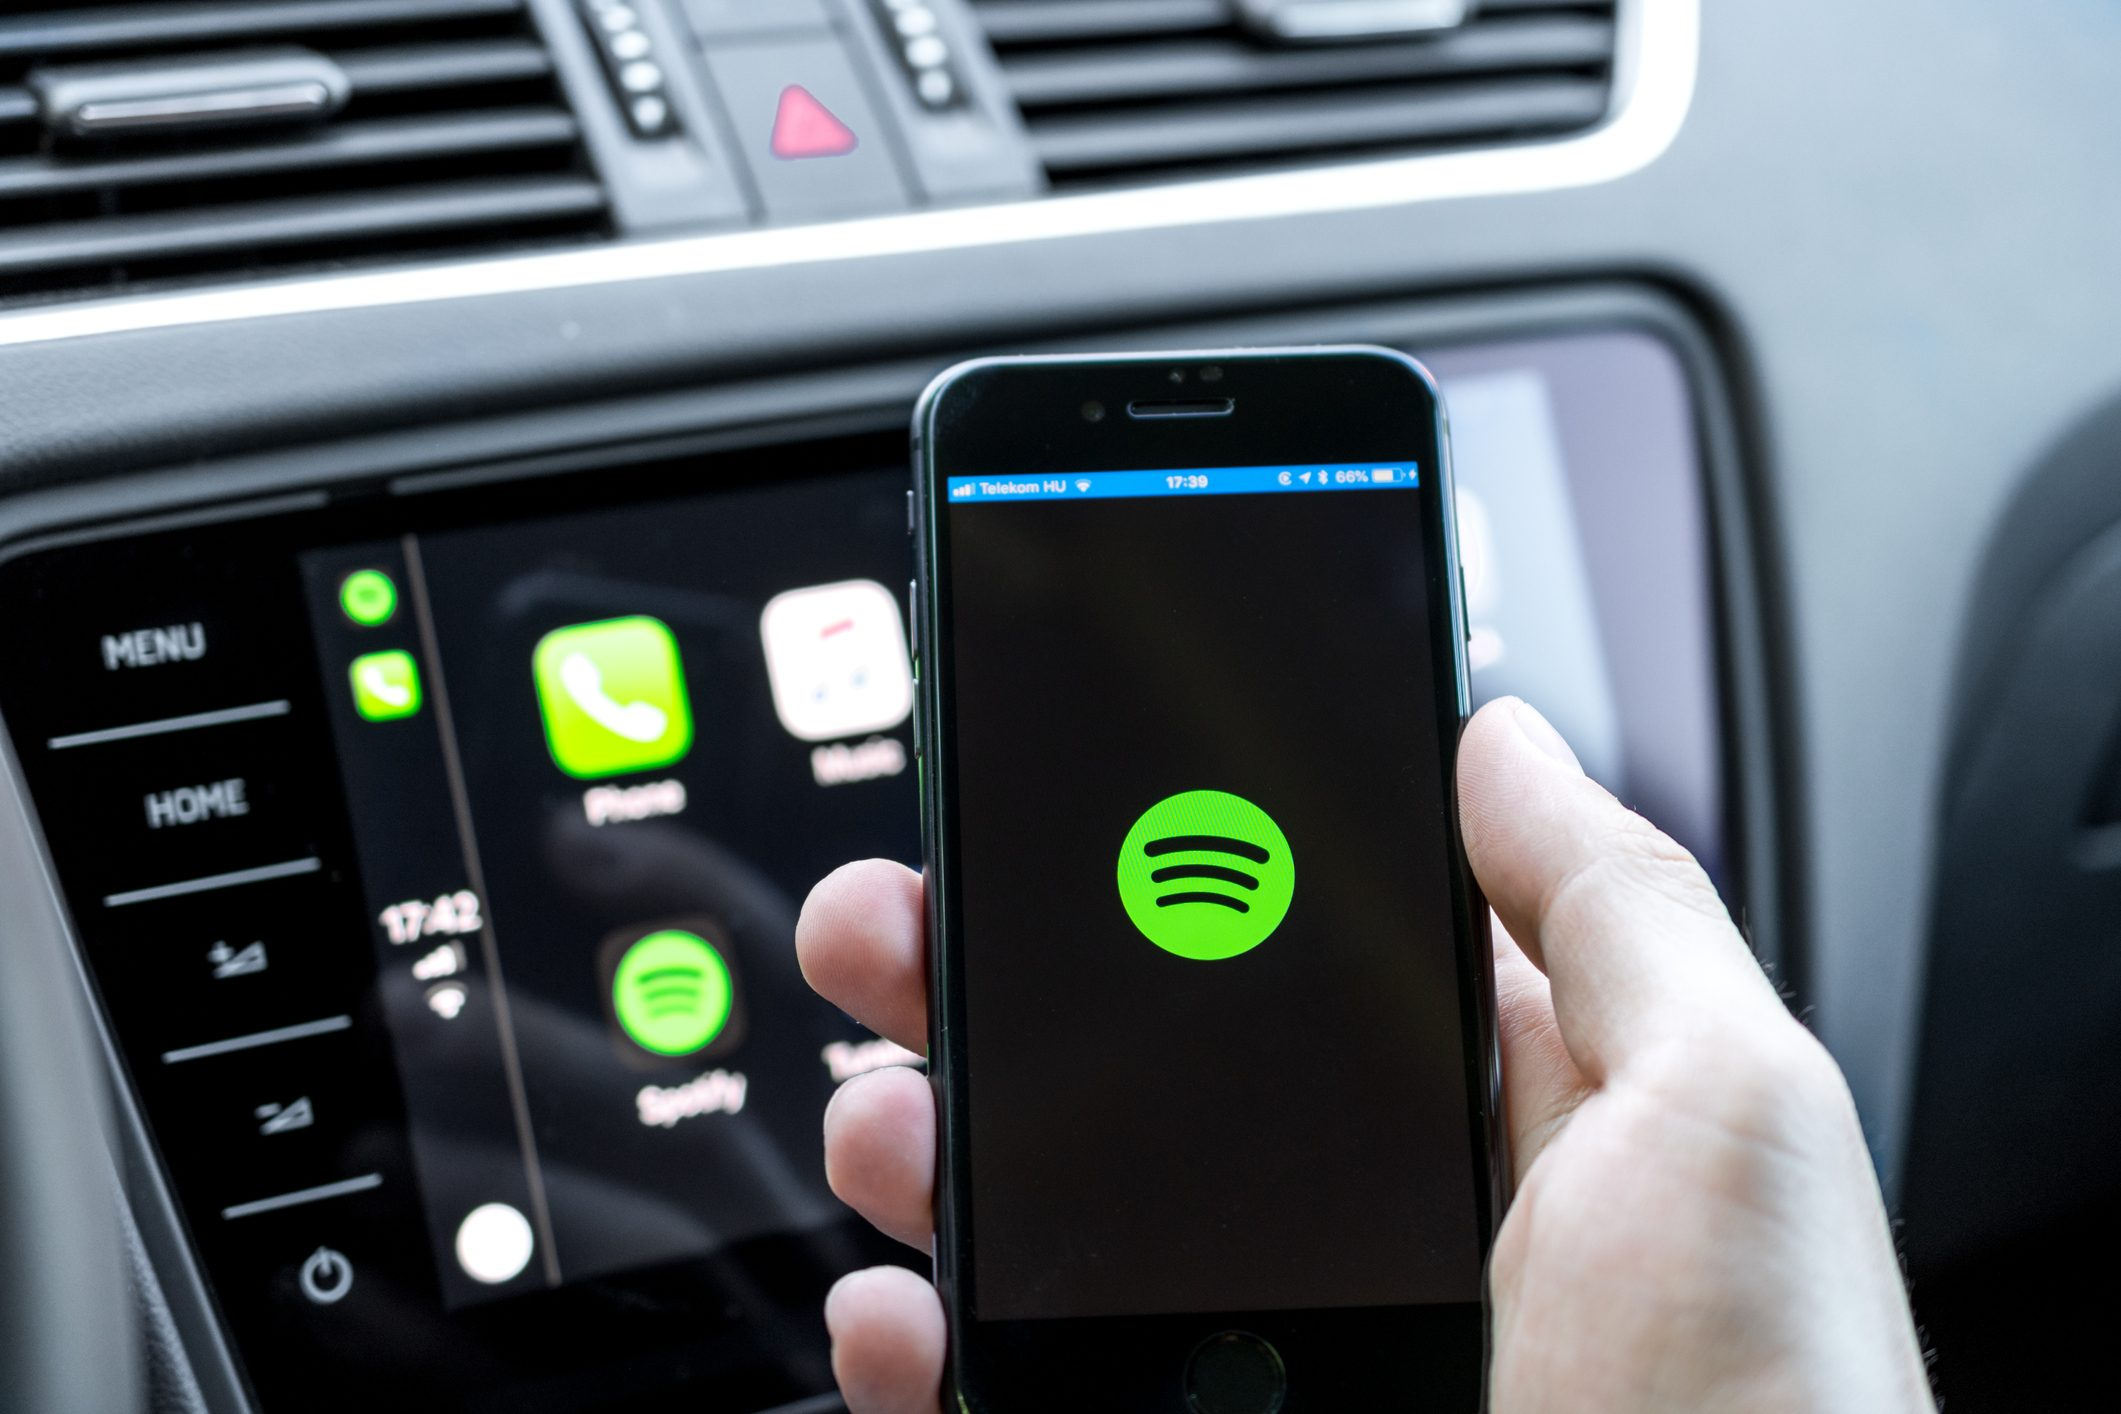 Male hands holding a smartphone that is connecting to the car's computer running the popular music streaming service